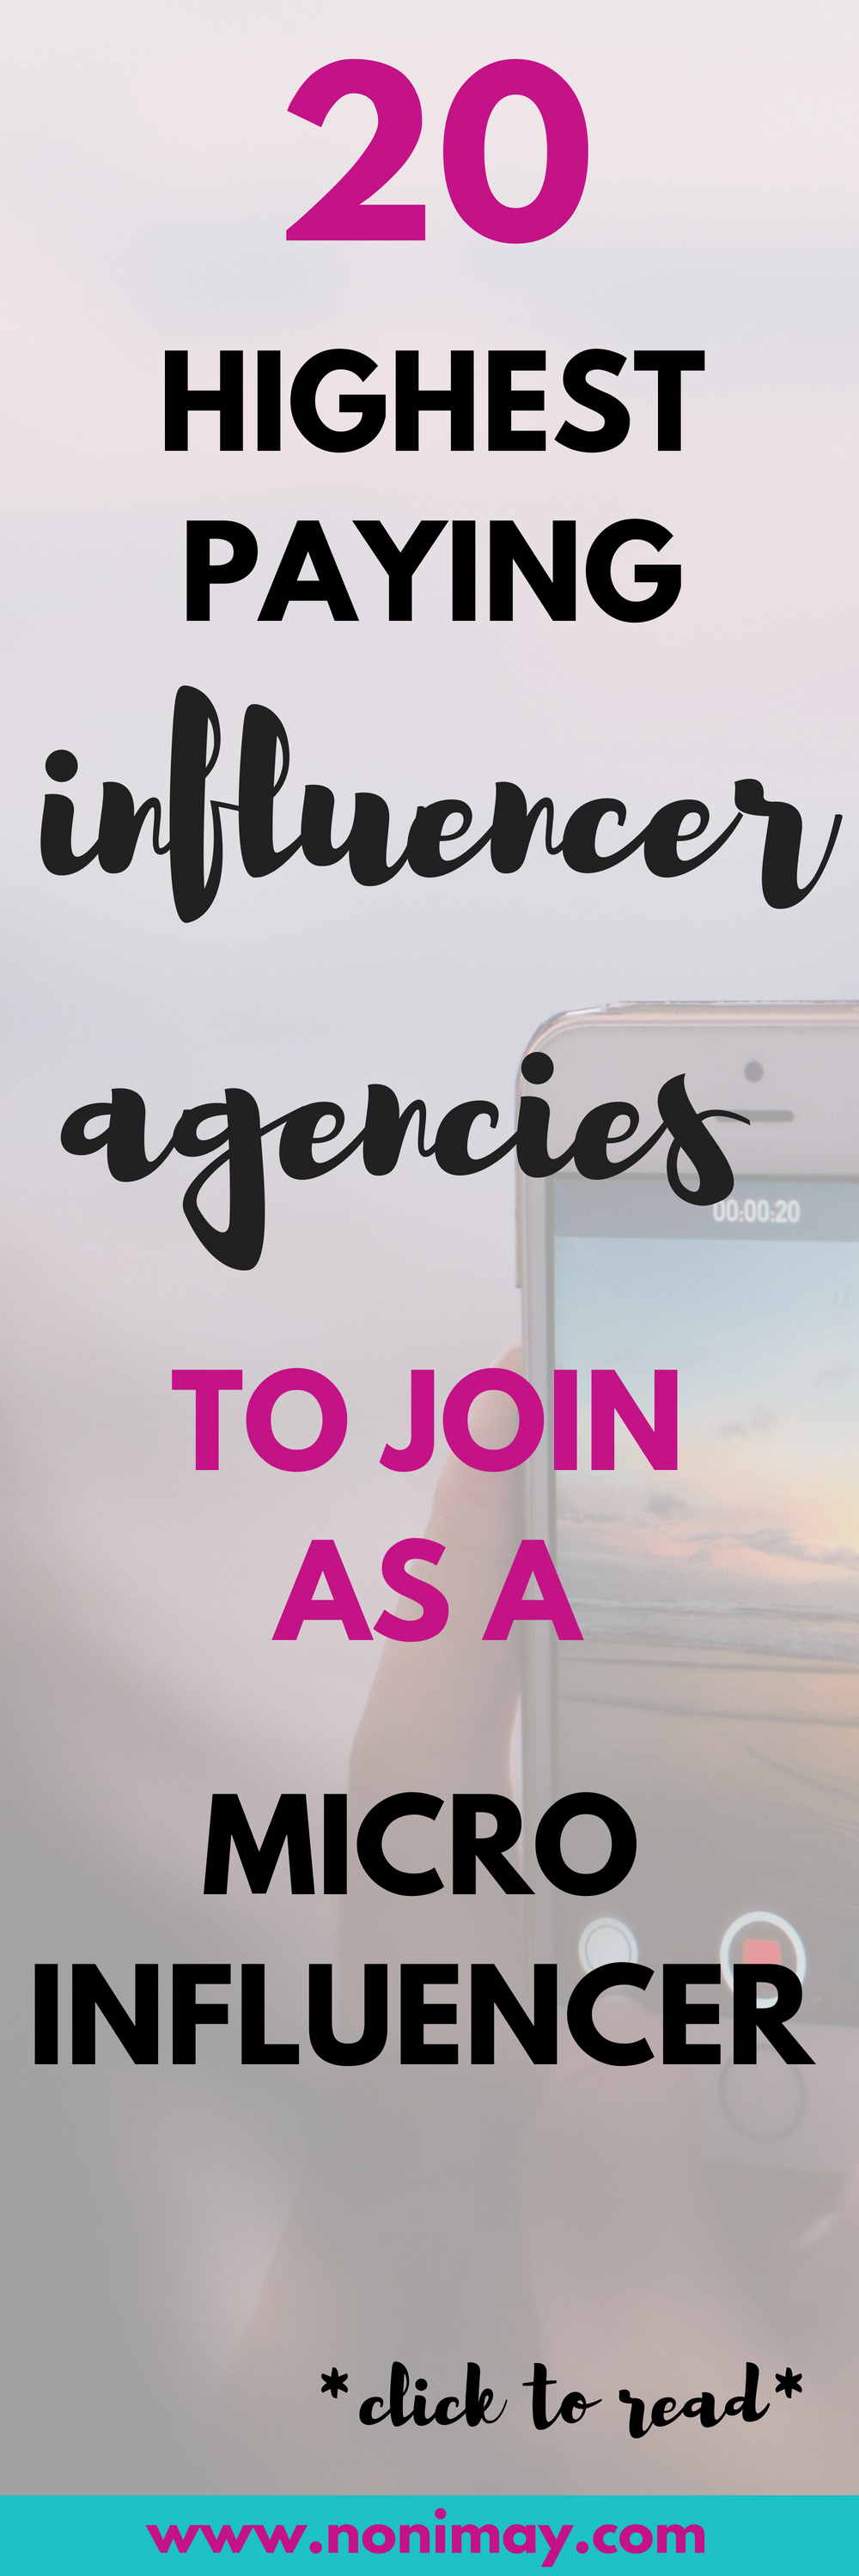 20 highest paying influencer agencies to join as a micro influencer